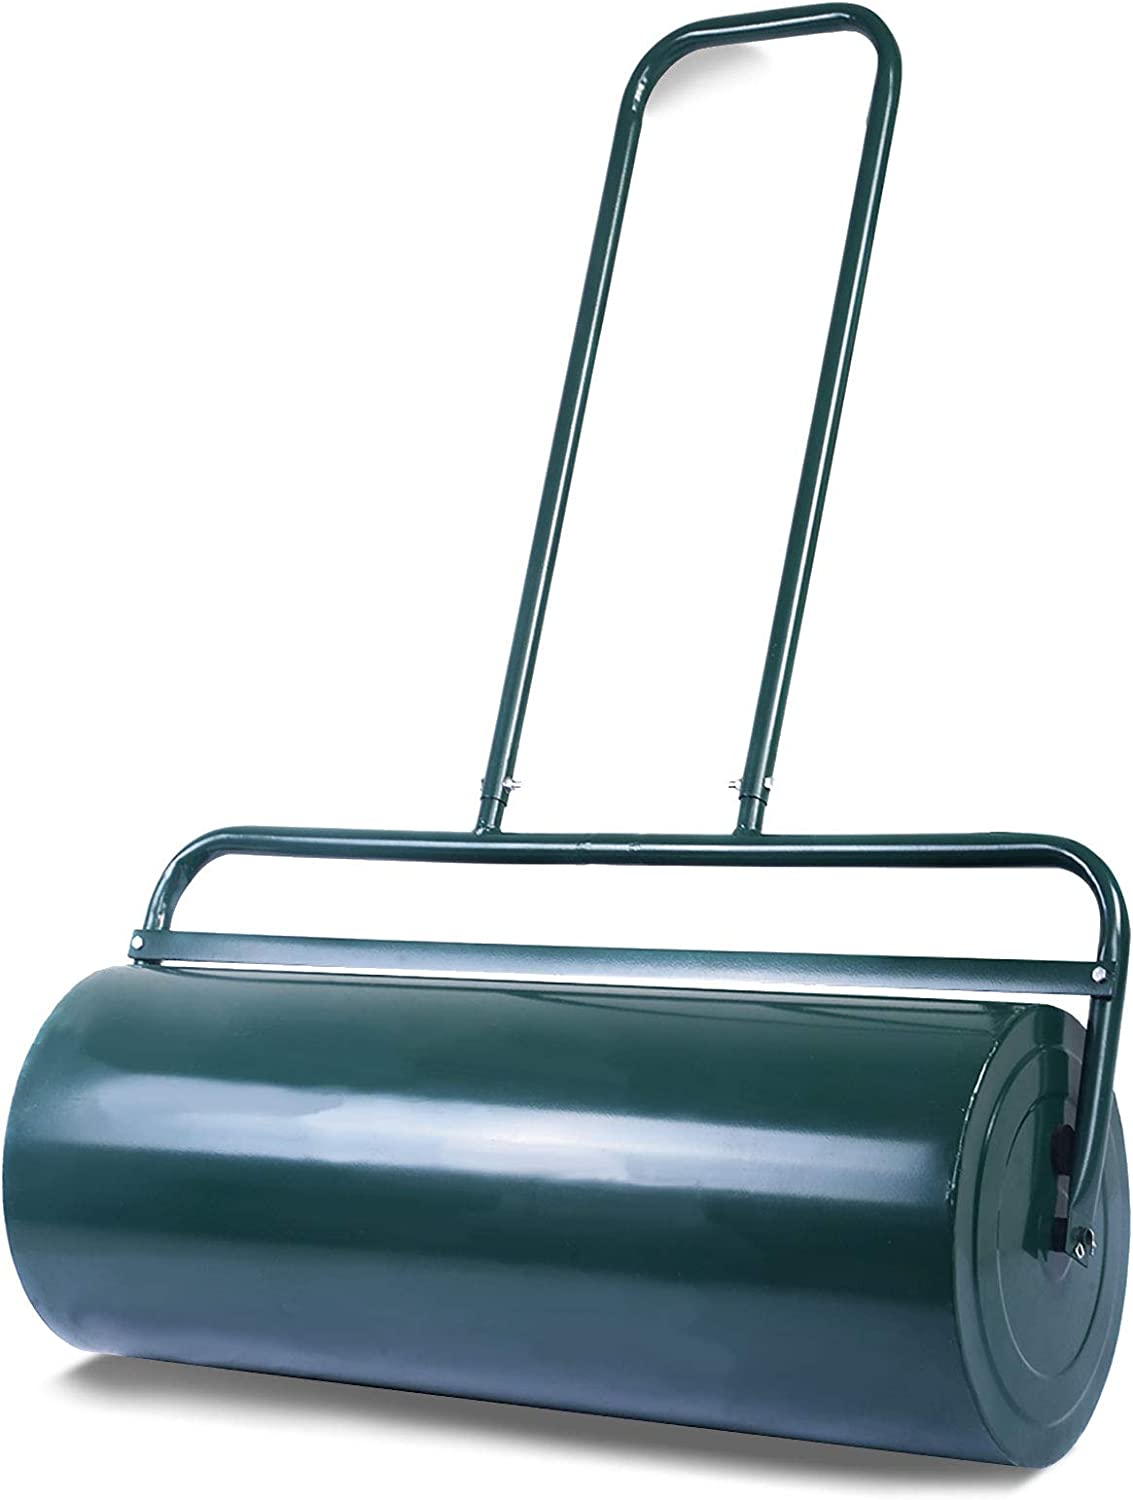 S shop AFSTAR Lawn Roller Popular brand in the world Push Tow H Sod with Behind U Shaped